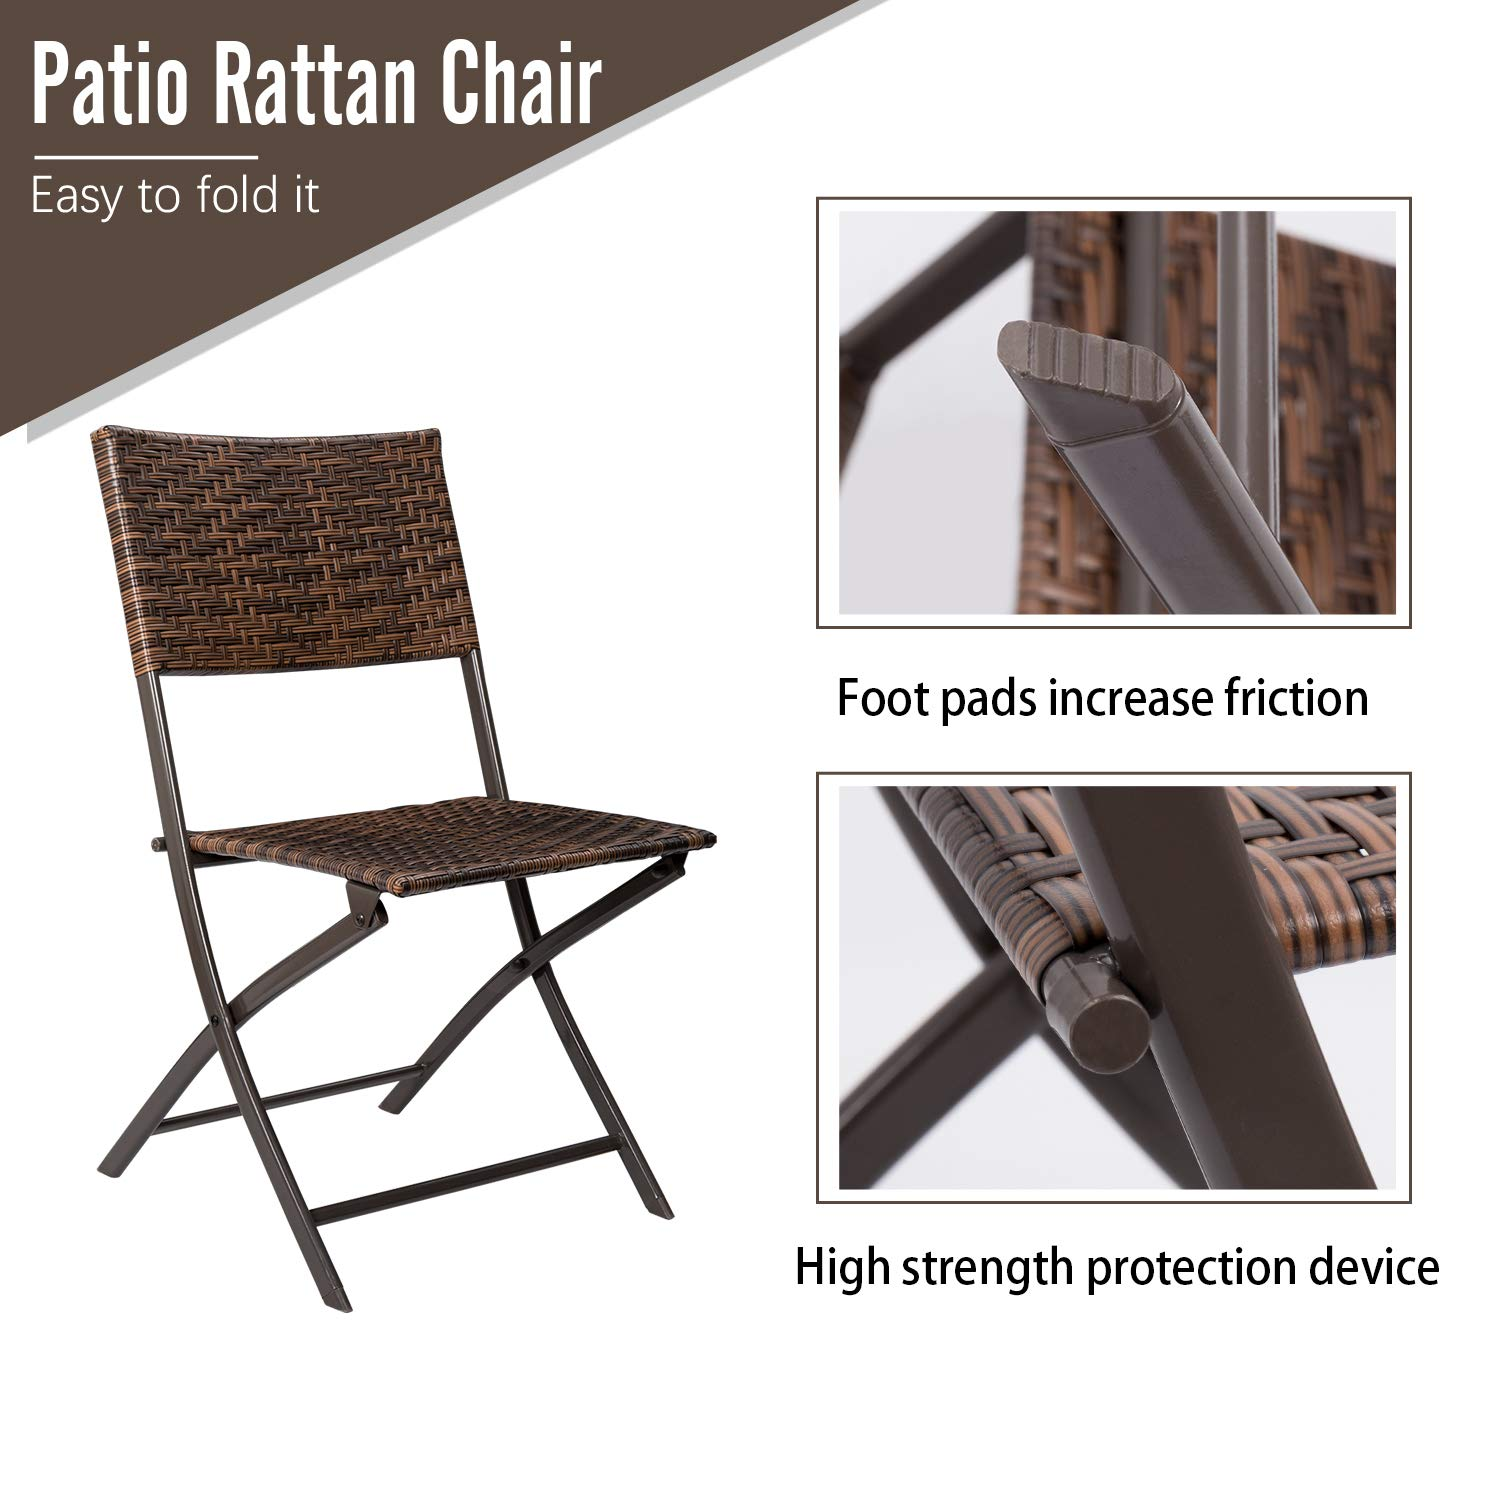 Brown Devoko Patio Bistro Sets Deck Folding Dining Chair /& Table 3 Pieces Outdoor Garden Poolside Beach Using Table and Chairs